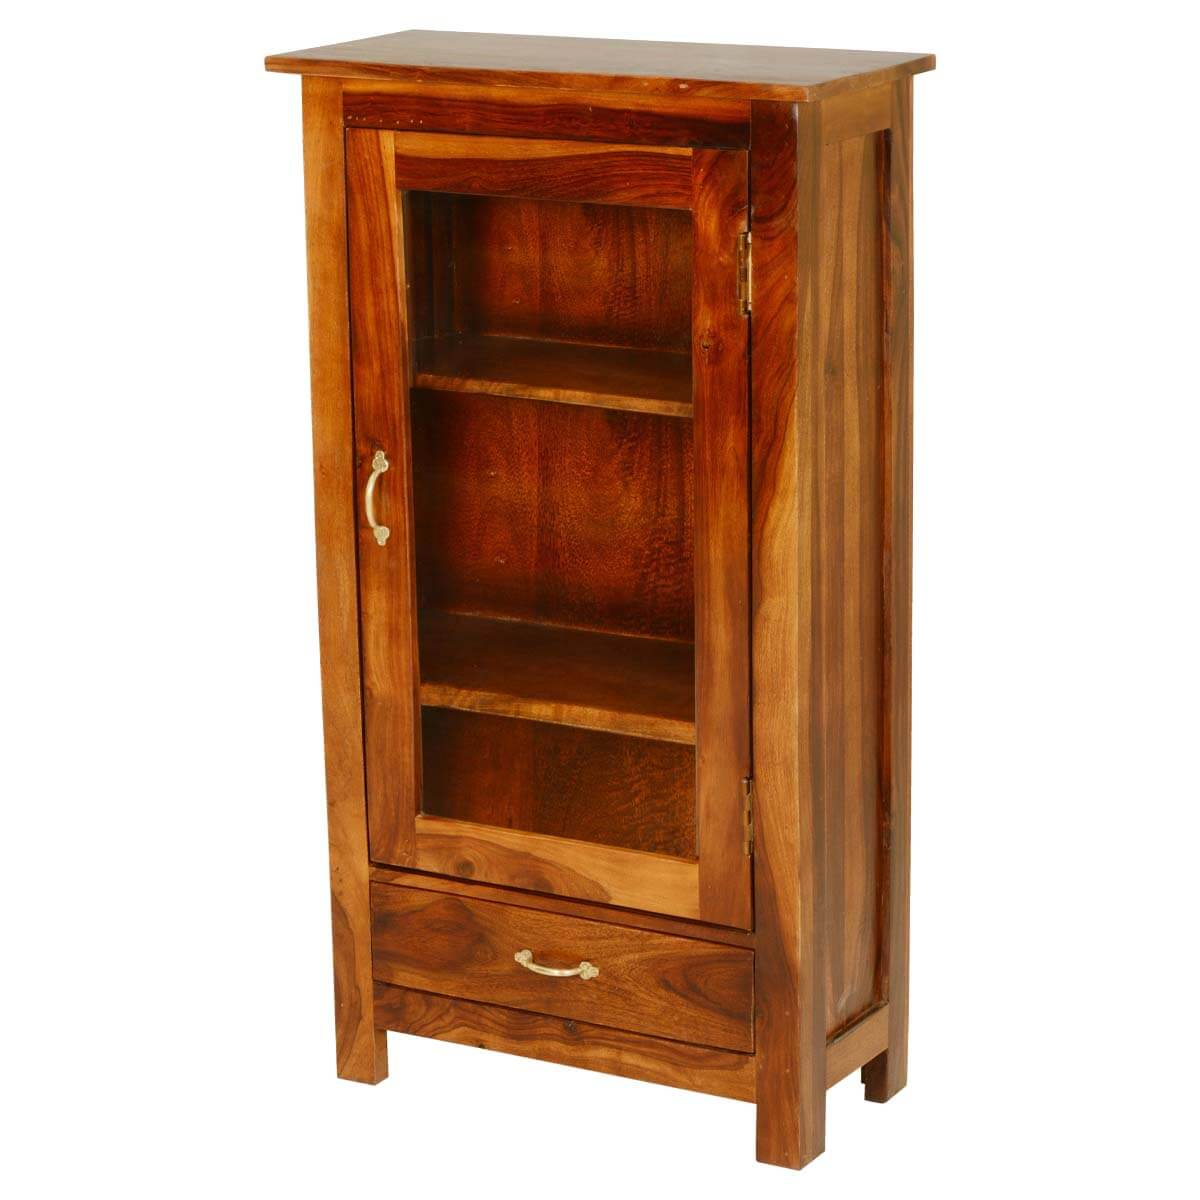 Pinellas solid wood single glass door 1 drawer curio cabinet for Curio cabinet